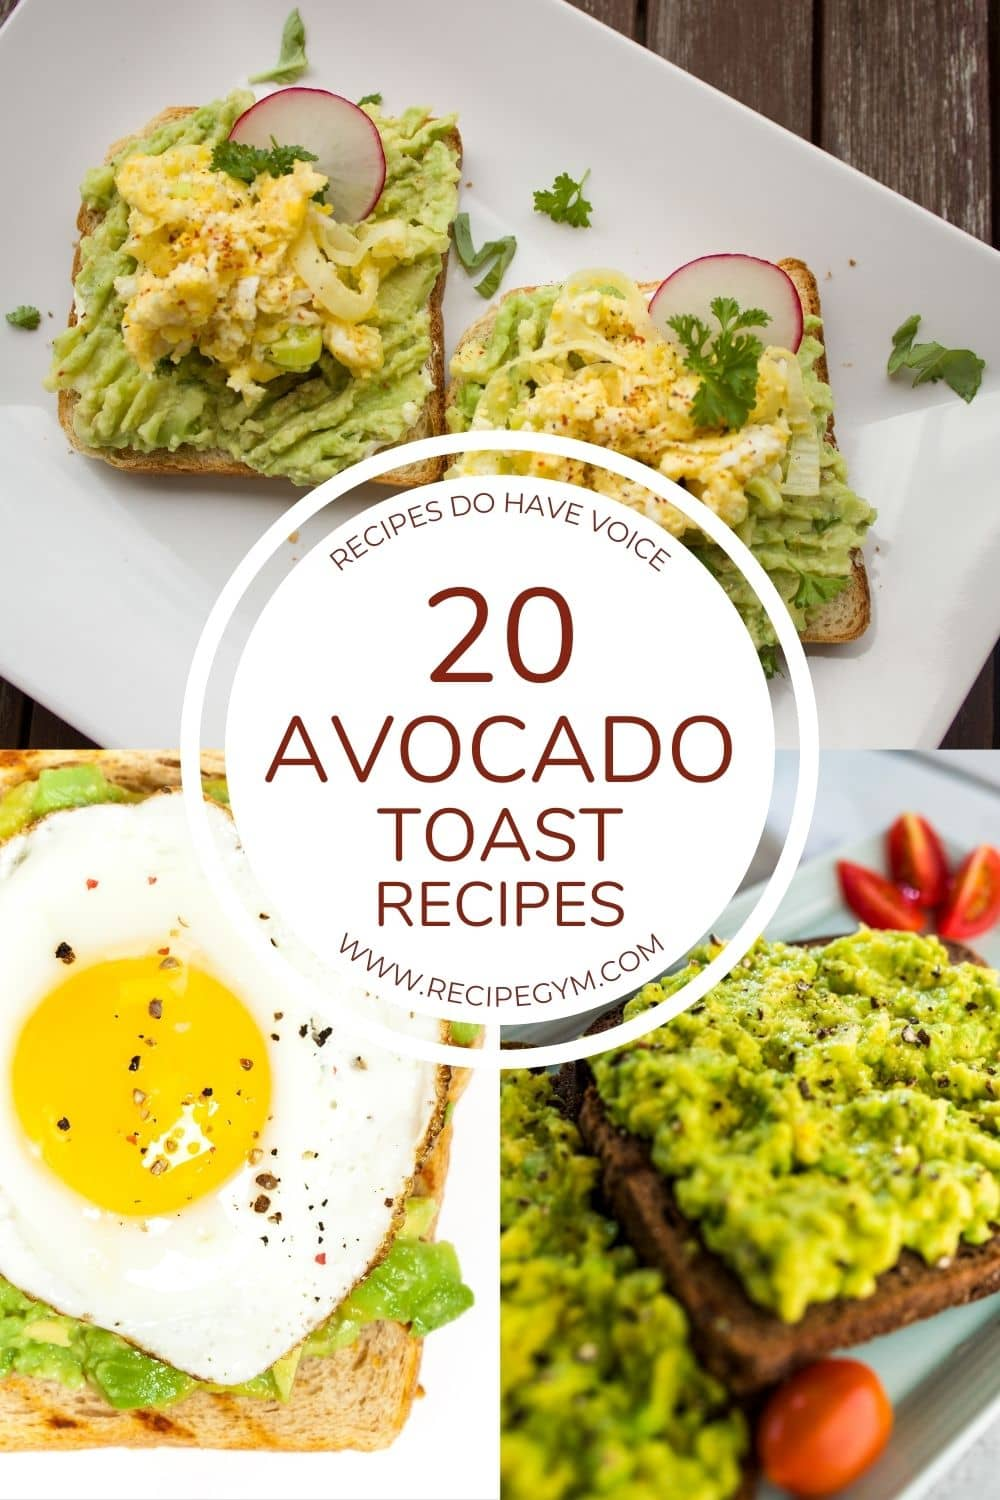 Avocado Toast Recipes